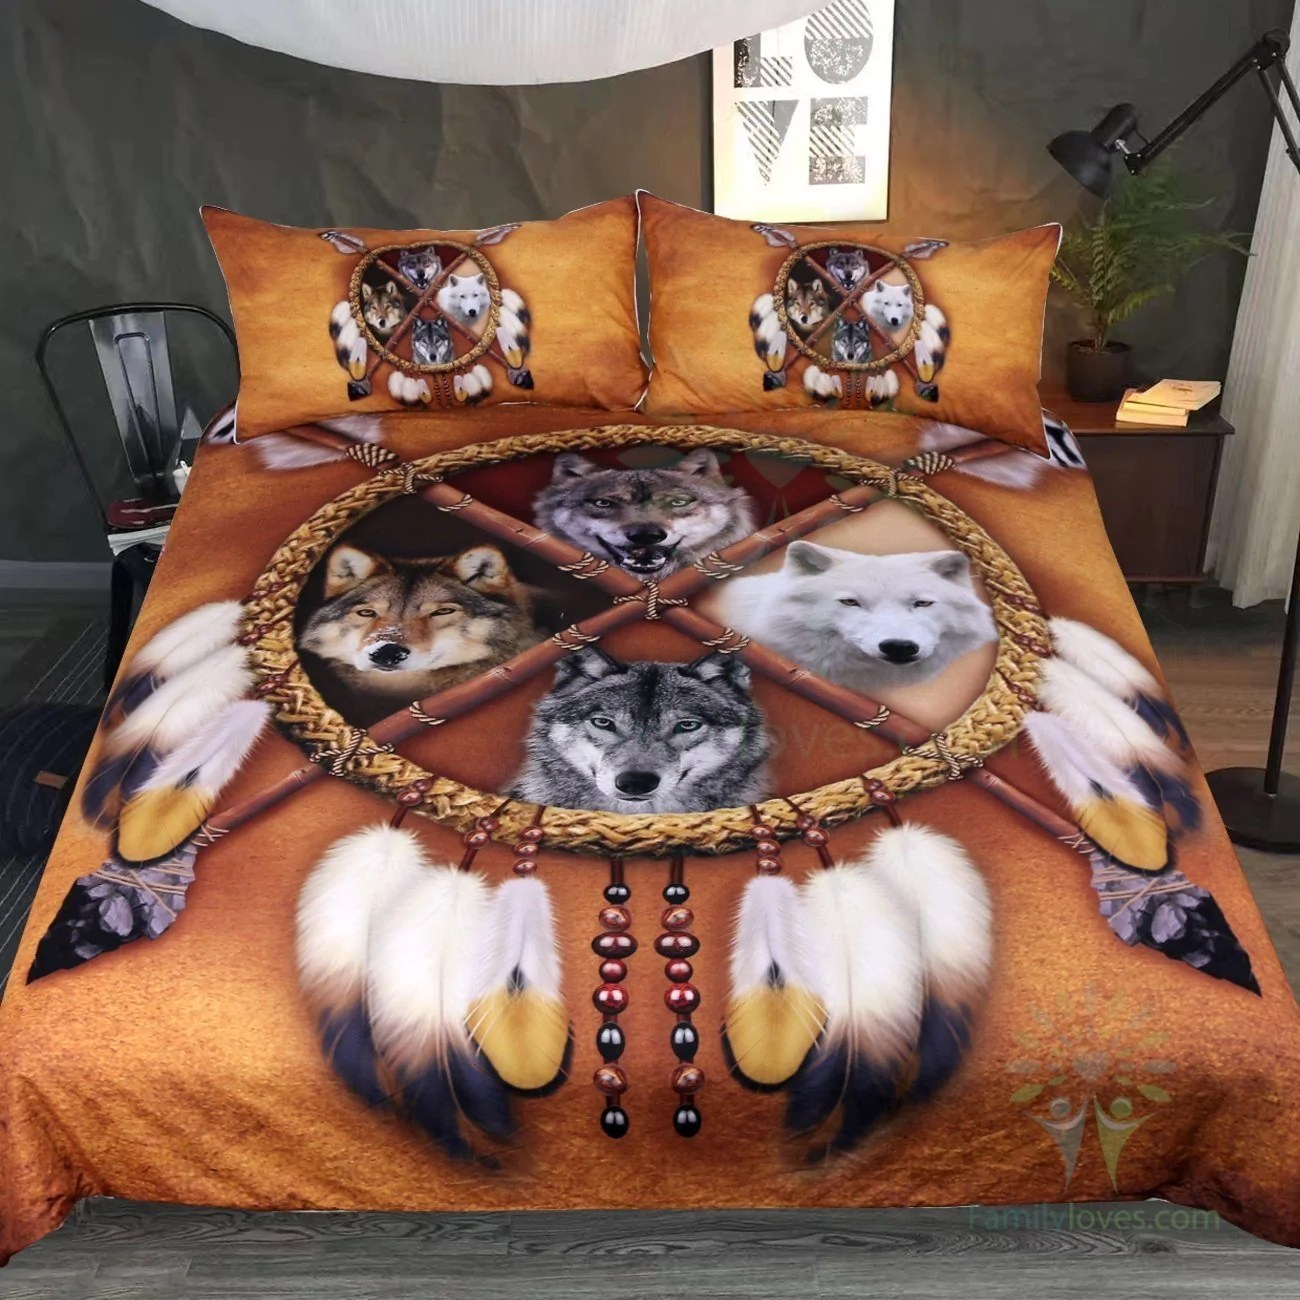 Buy Duvet Cover 4 Wolves Dreamcatcher Bedding Native American Golden Brown Indian Duvet Cover Vintage Feather Bedding Cover Set